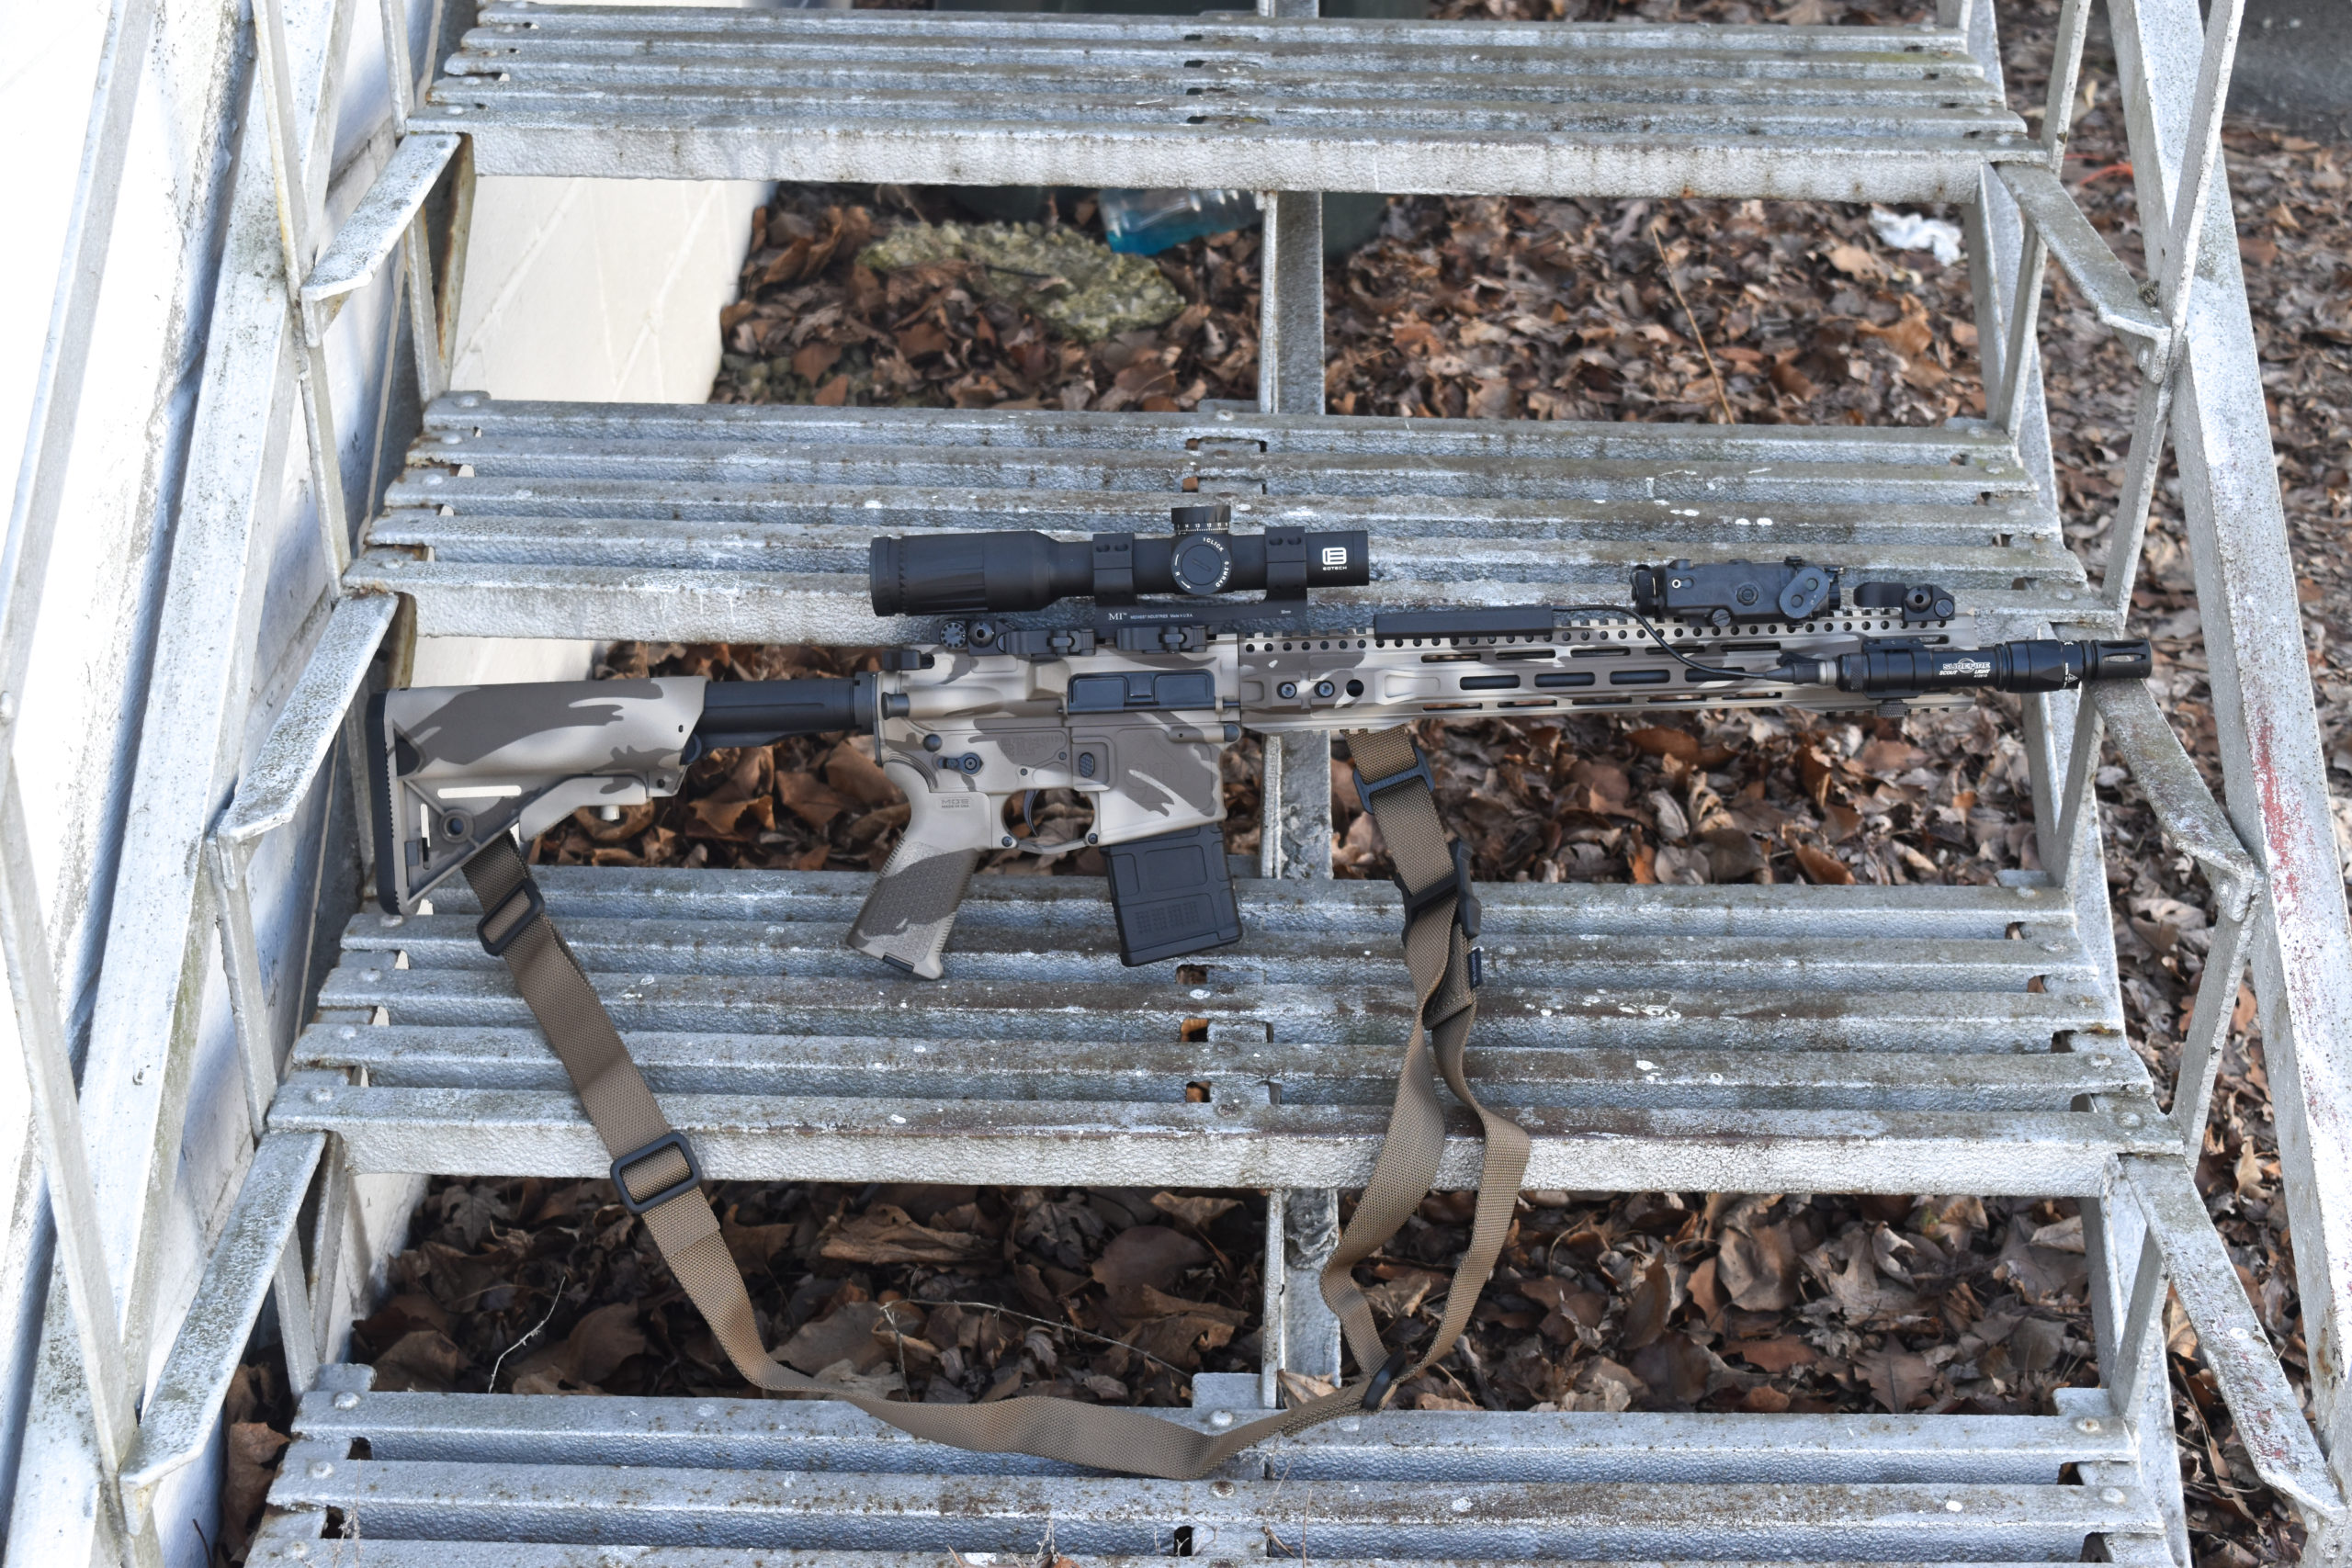 BKF AR15 Rifles and Pistols